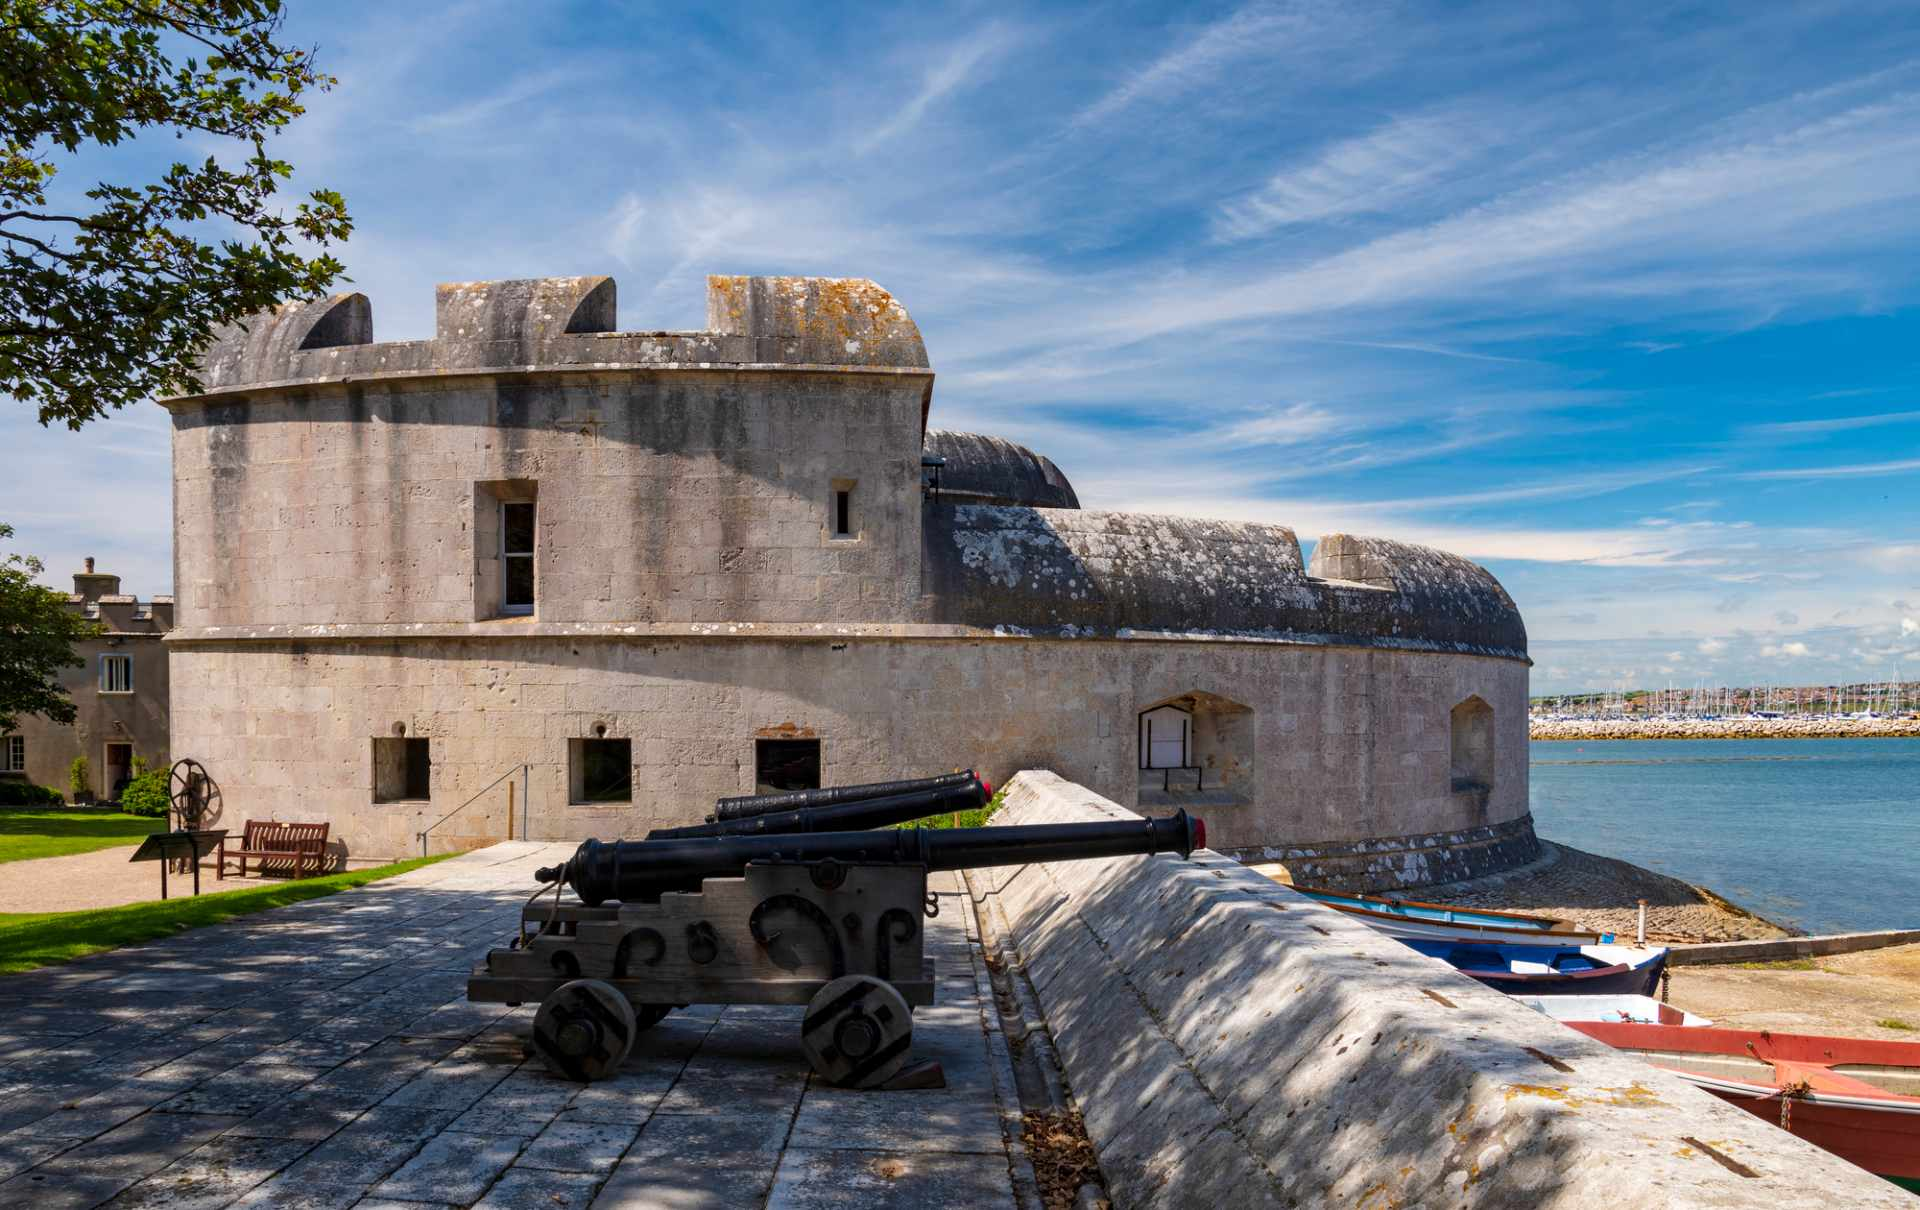 portland-castle-and-canons-pointing-out-to-sea-with-blue-skies